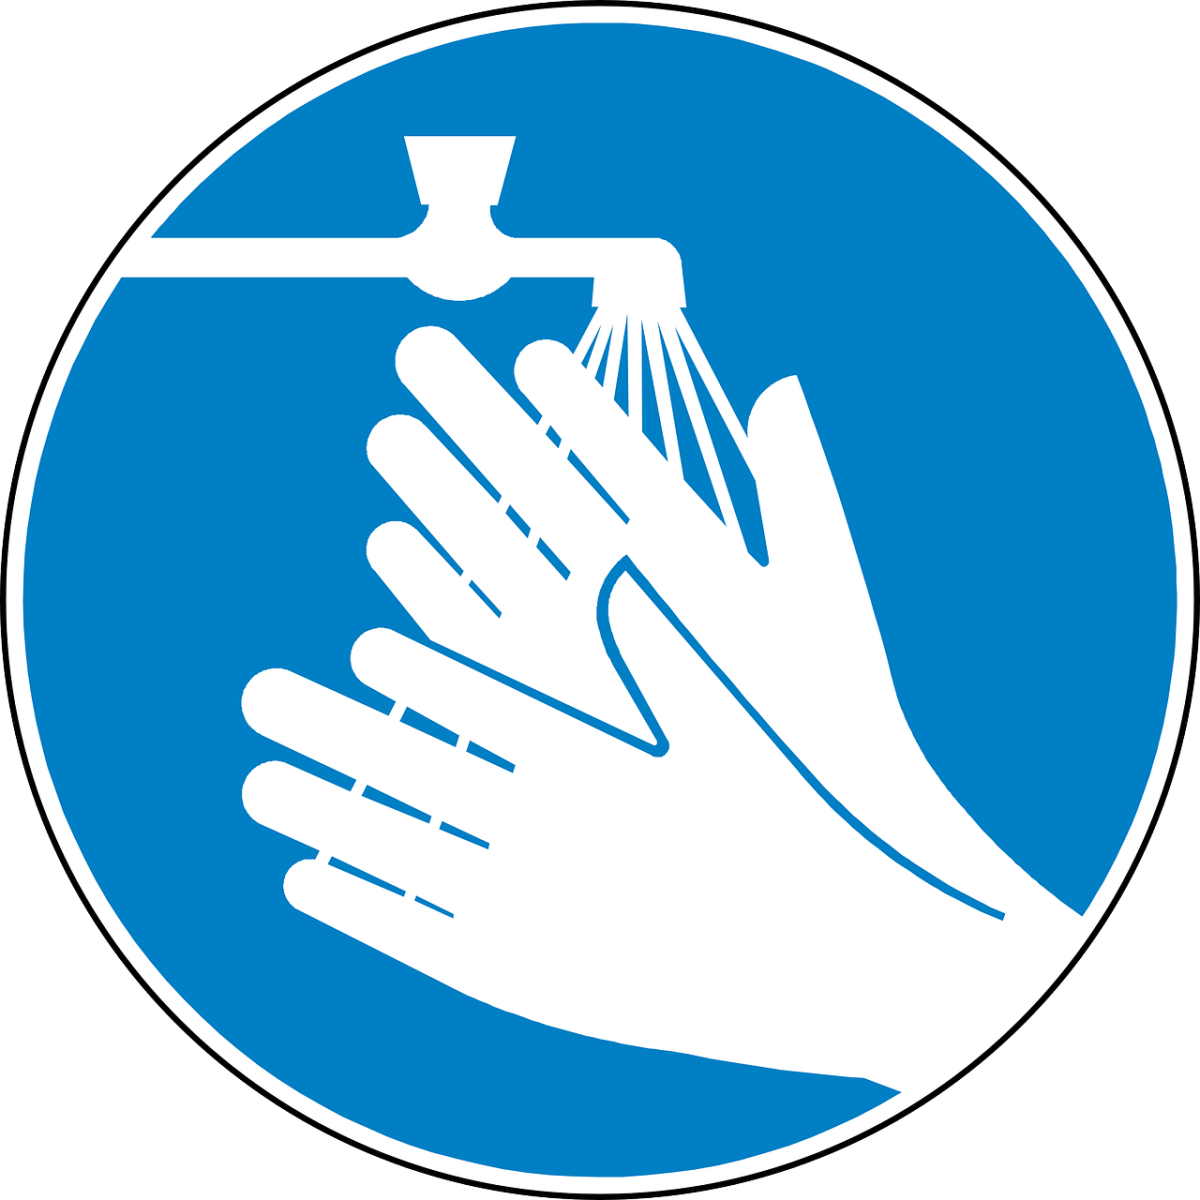 Wash Hands To Prevent Covid 19 Transmission